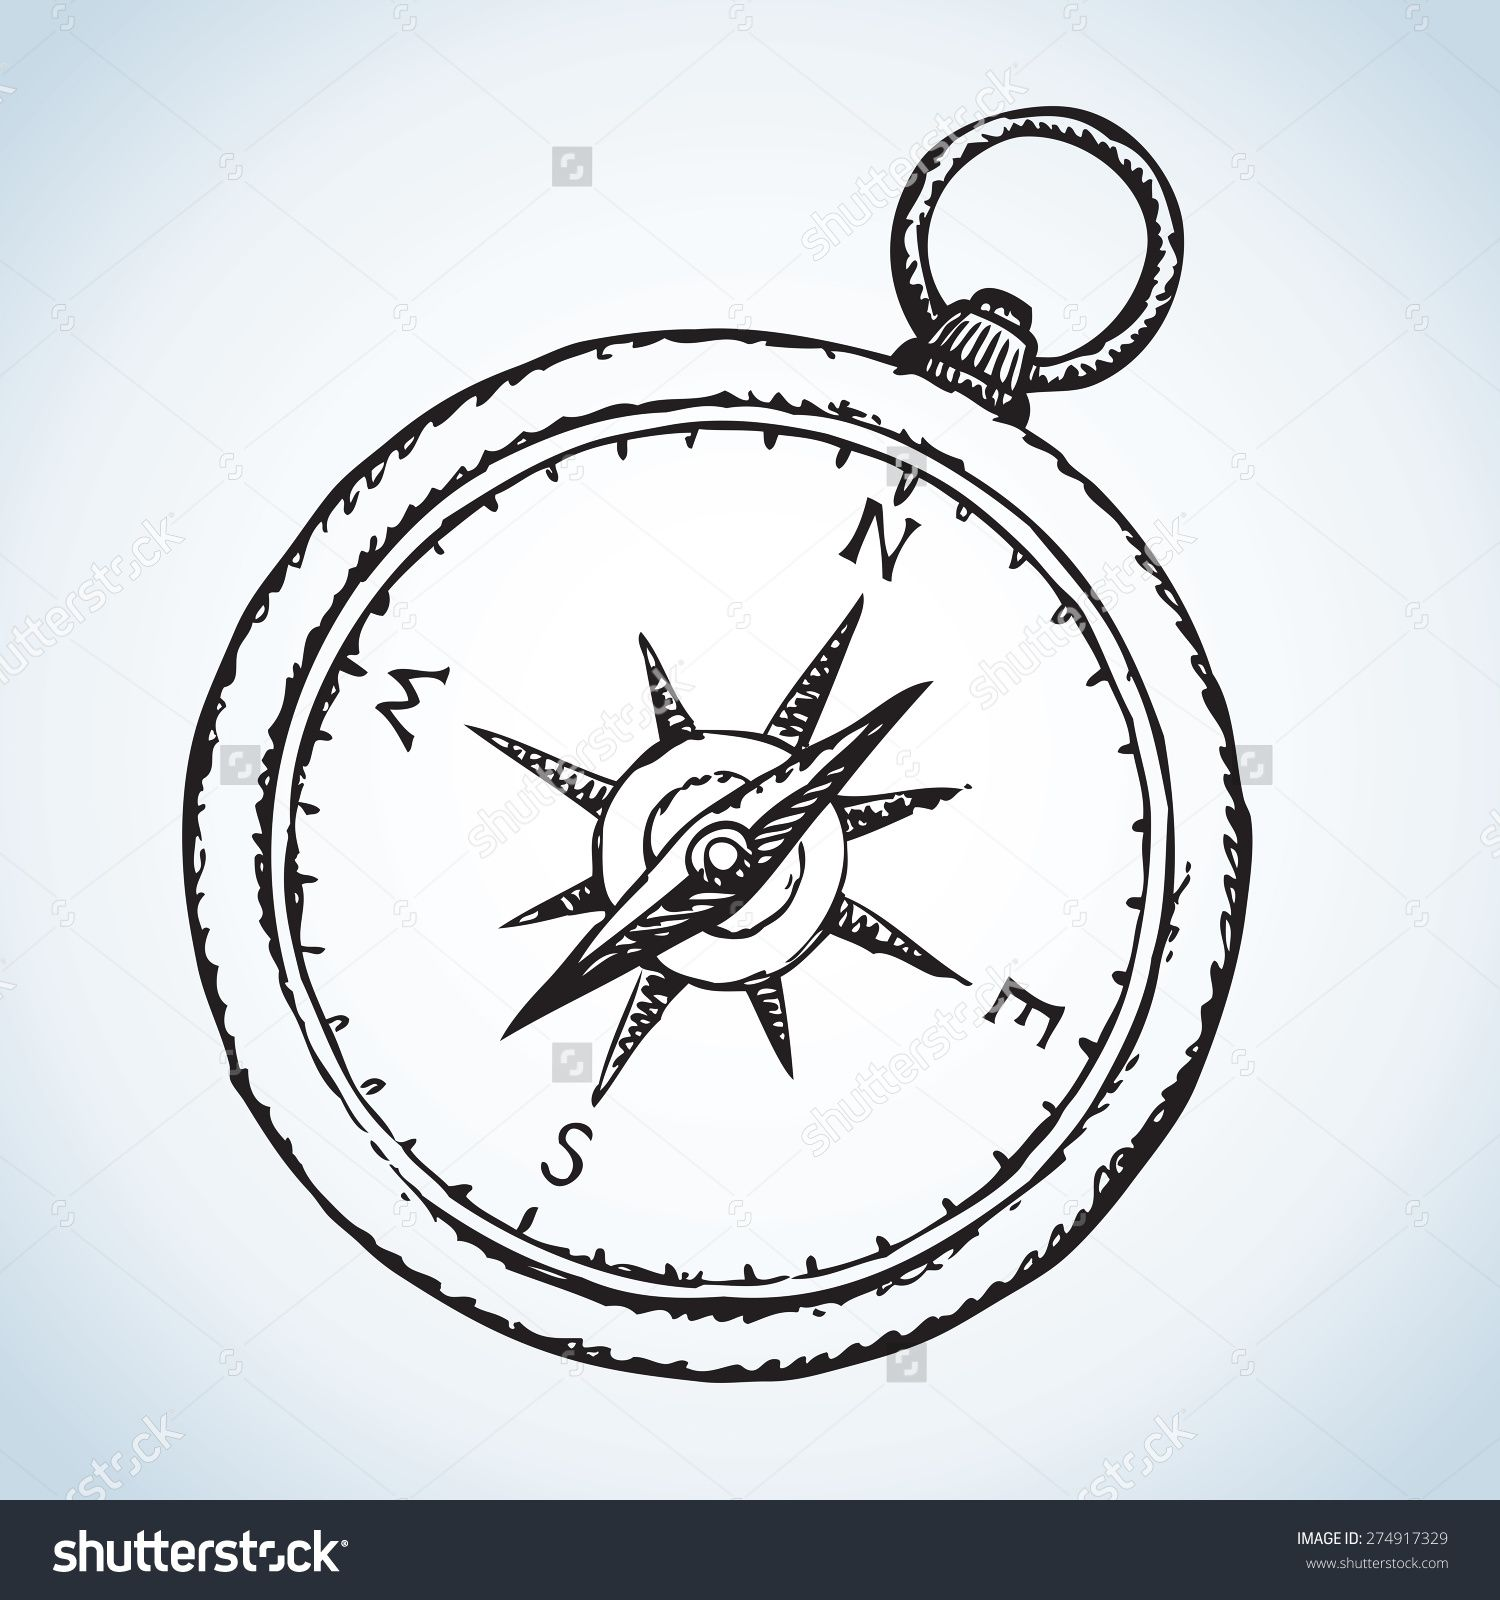 1500x1600 Stock Vector Vintage Romantic Naval Grunge Pocket Compass